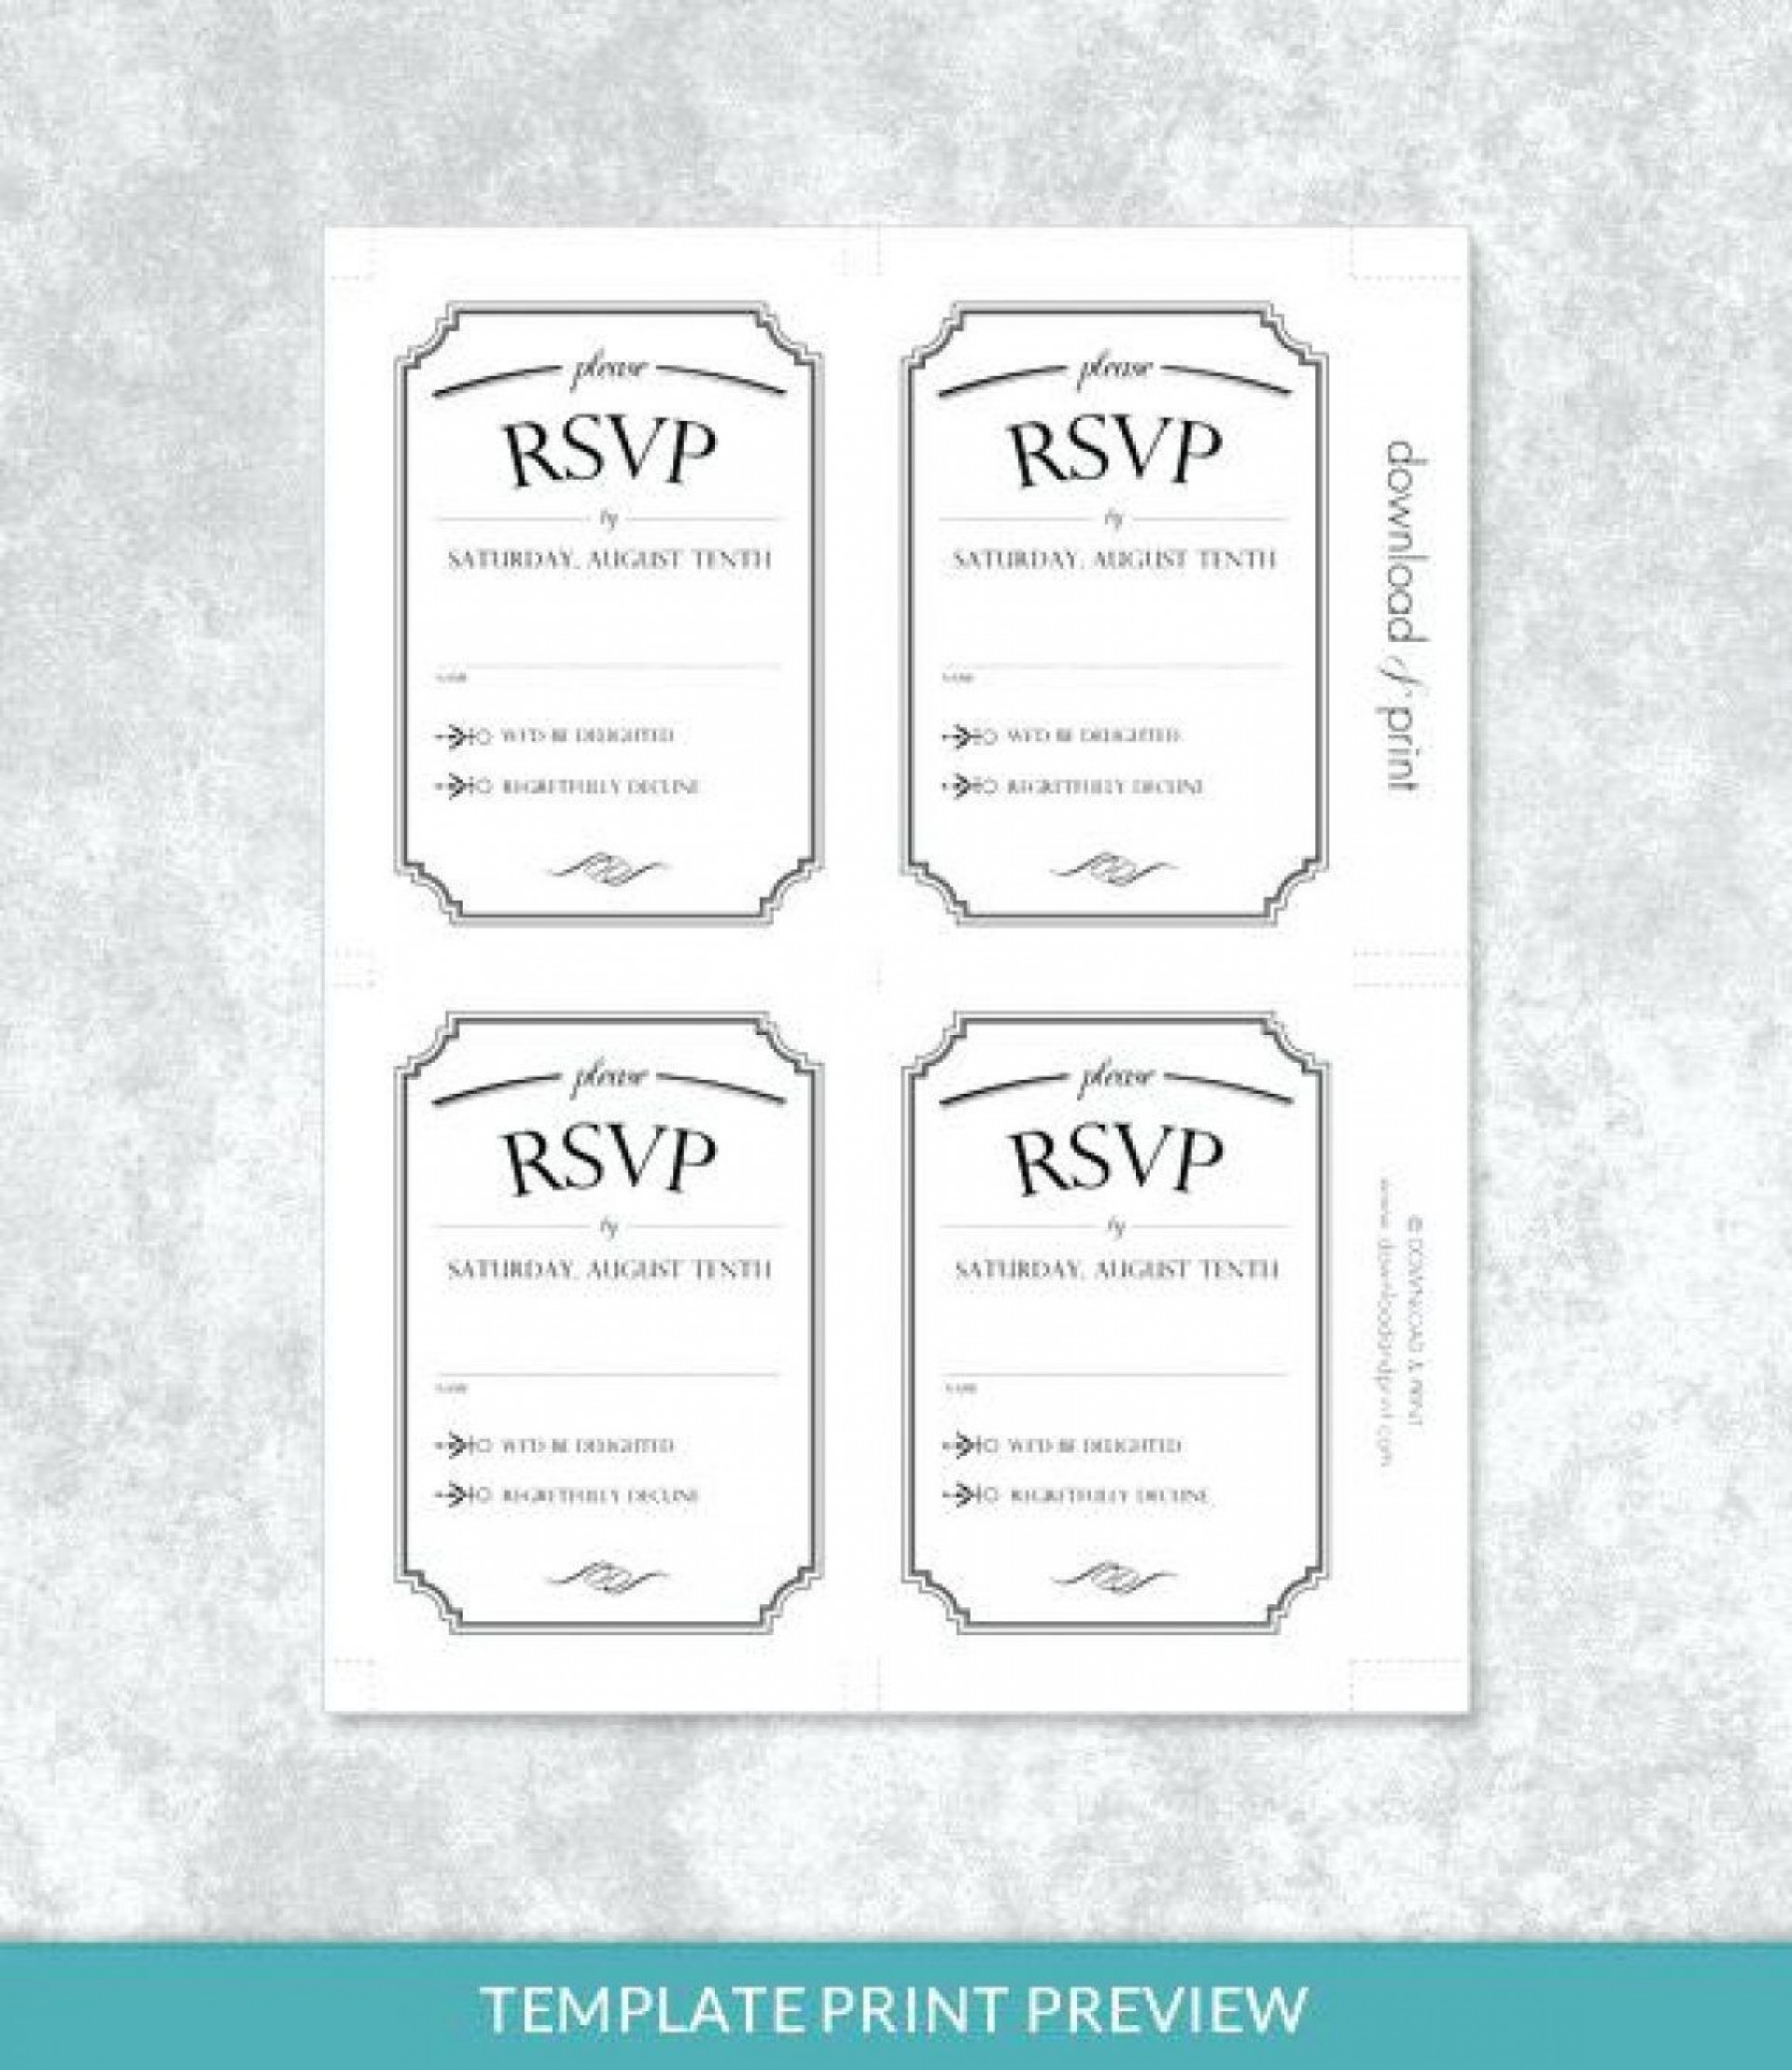 001 Stupendou Microsoft Word Invitation Template 4 Per Page High Def 1920